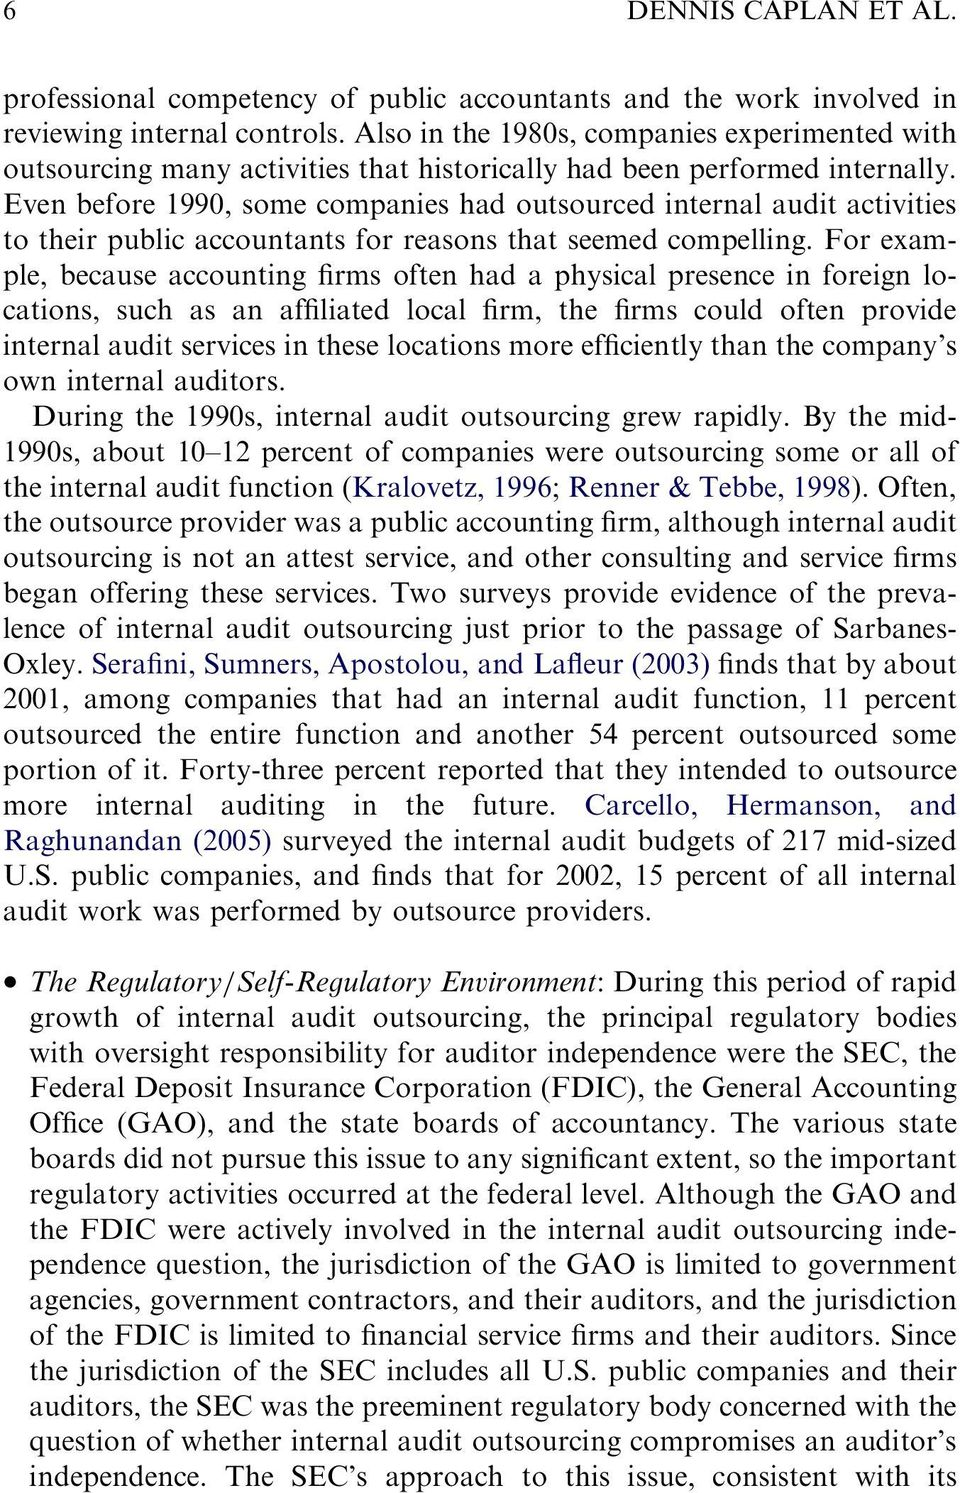 Even before 1990, some companies had outsourced internal audit activities to their public accountants for reasons that seemed compelling.